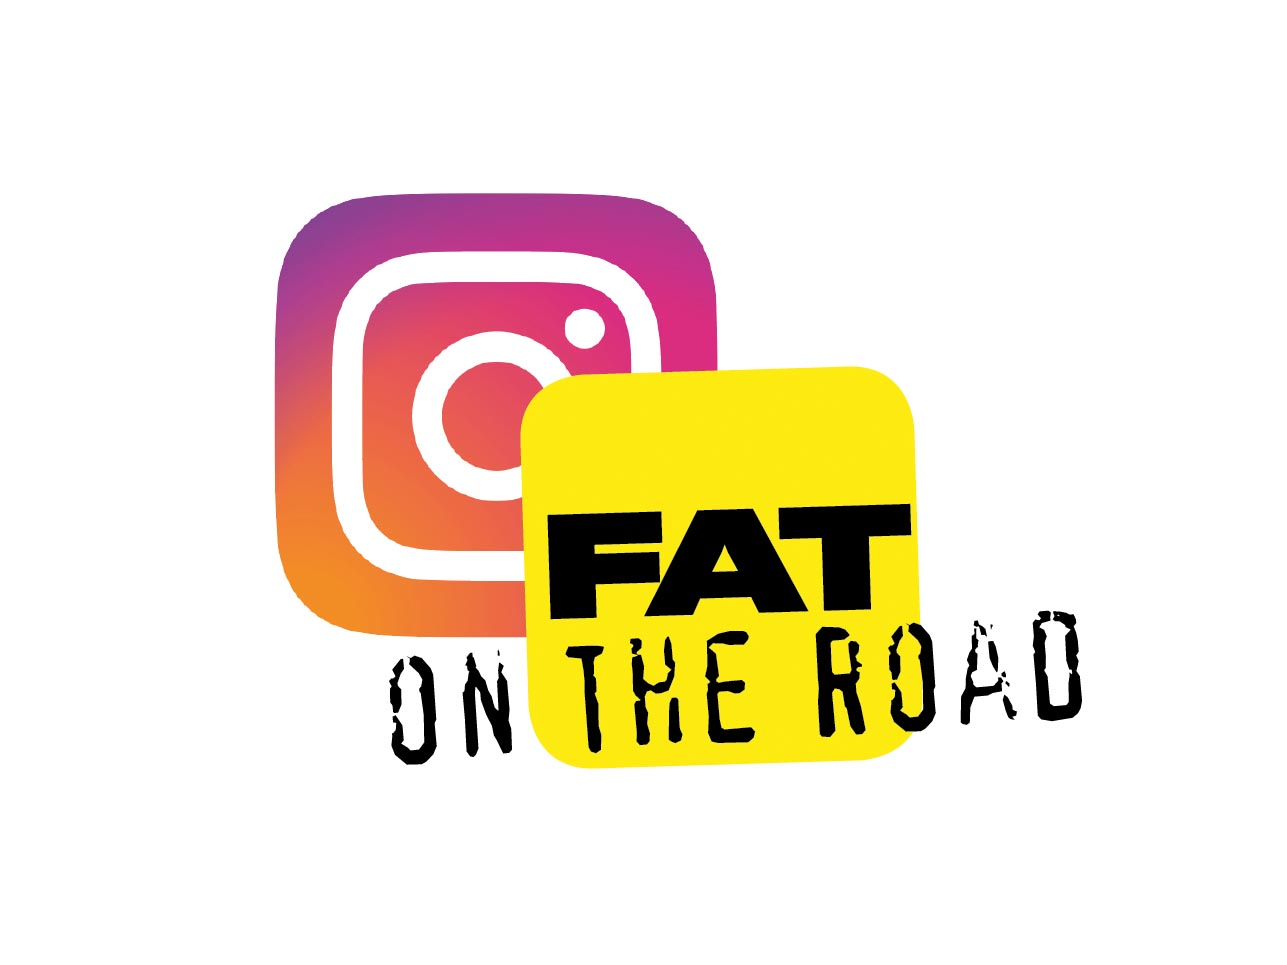 www.instagram.com/fat_mobility_report